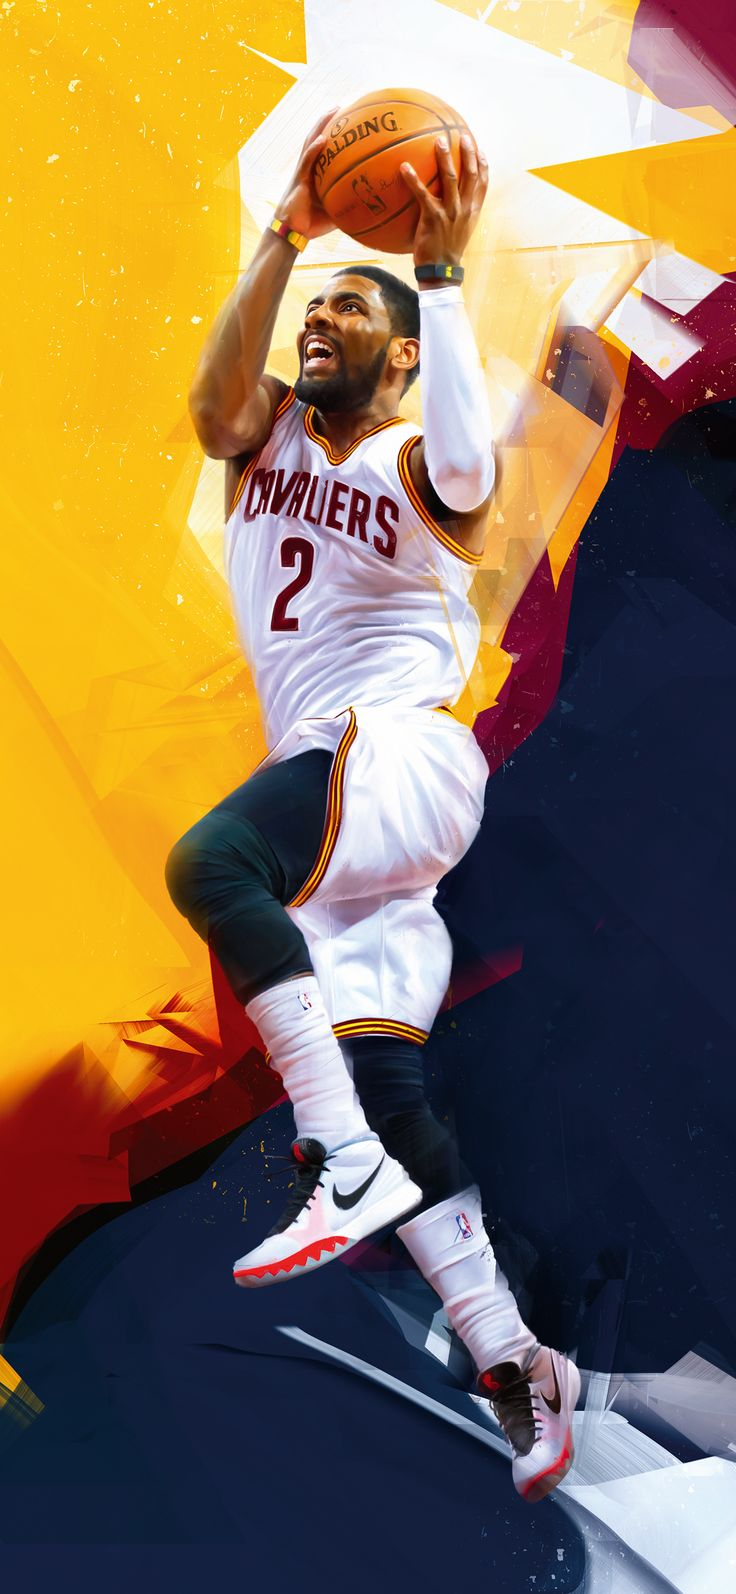 Free Download Kyrie Irving Iphone Wallpaper 2017 69884 Wallpaper